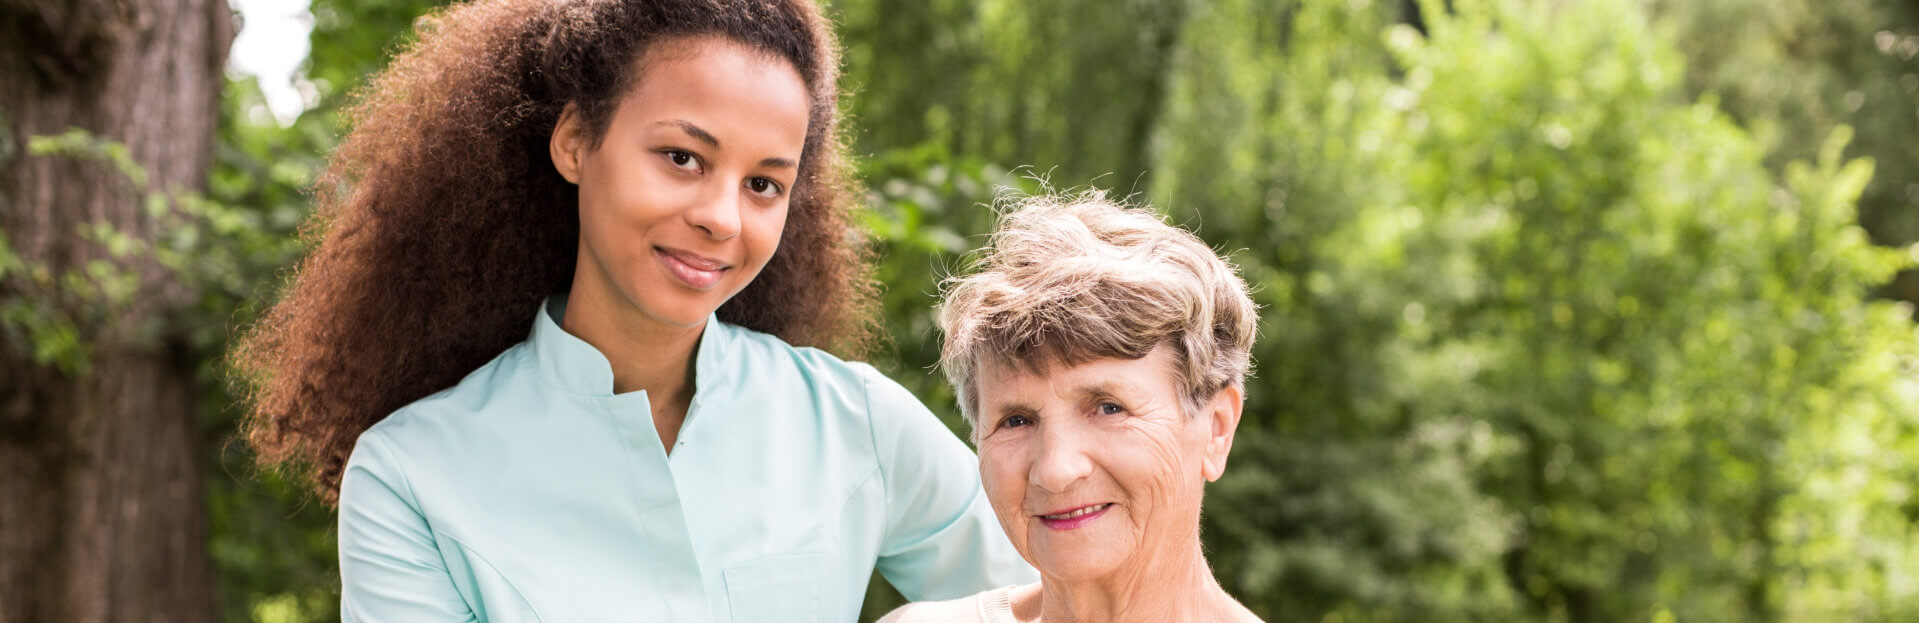 caregiver and her elderly patient smiling